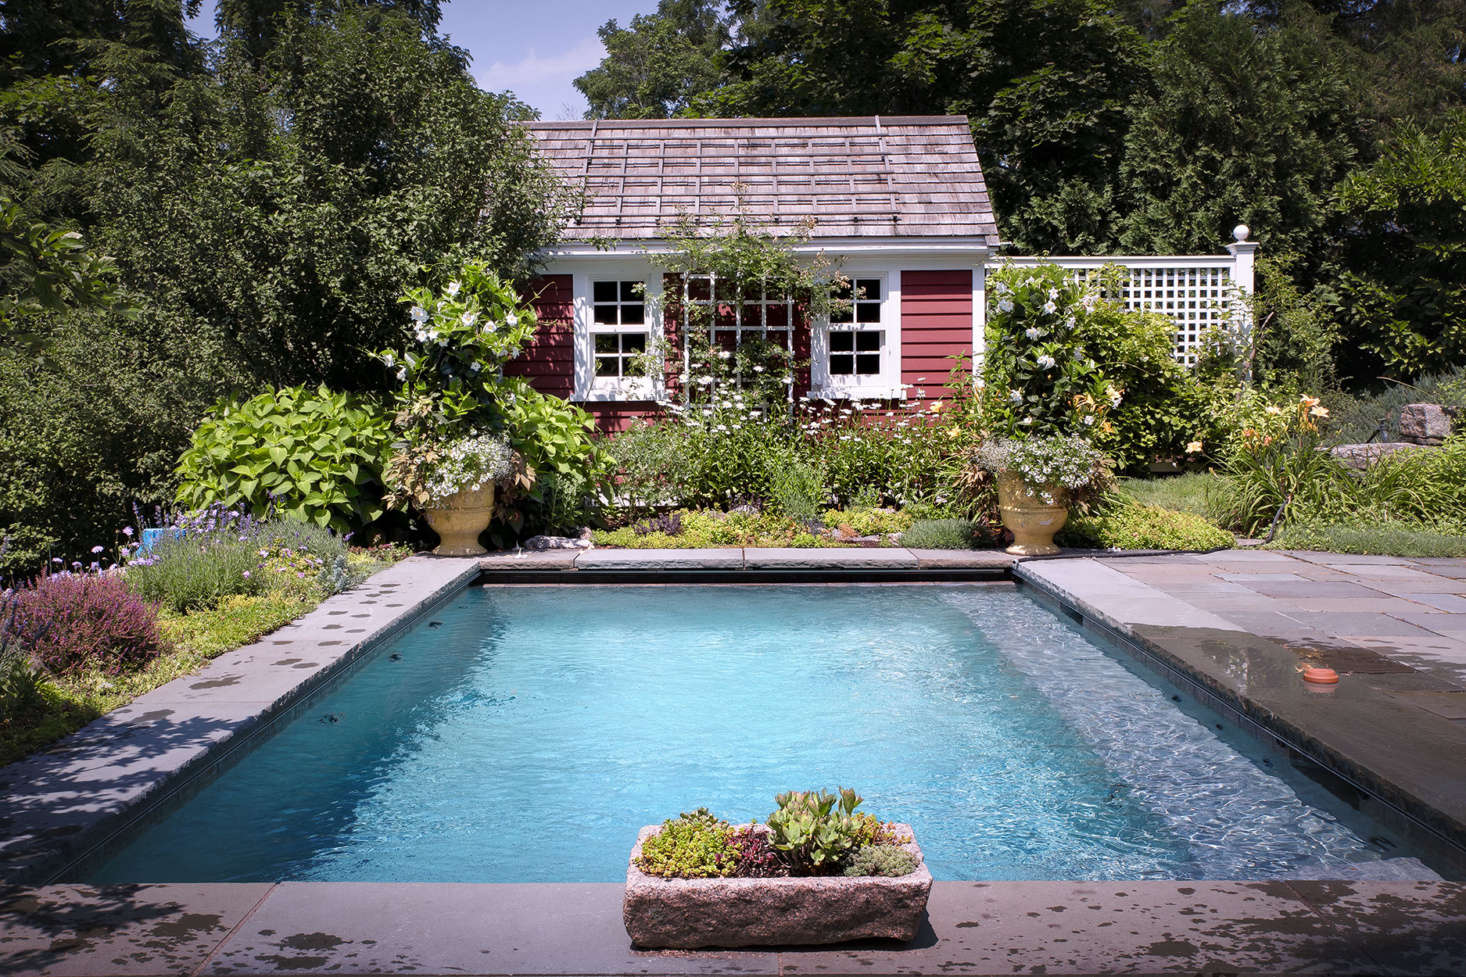 Surrounded by abundant perennials such as Shasta daisies, as well as terra cotta pots planted with vibrant annuals, the rose-covered pool house enhances the cottage feel.